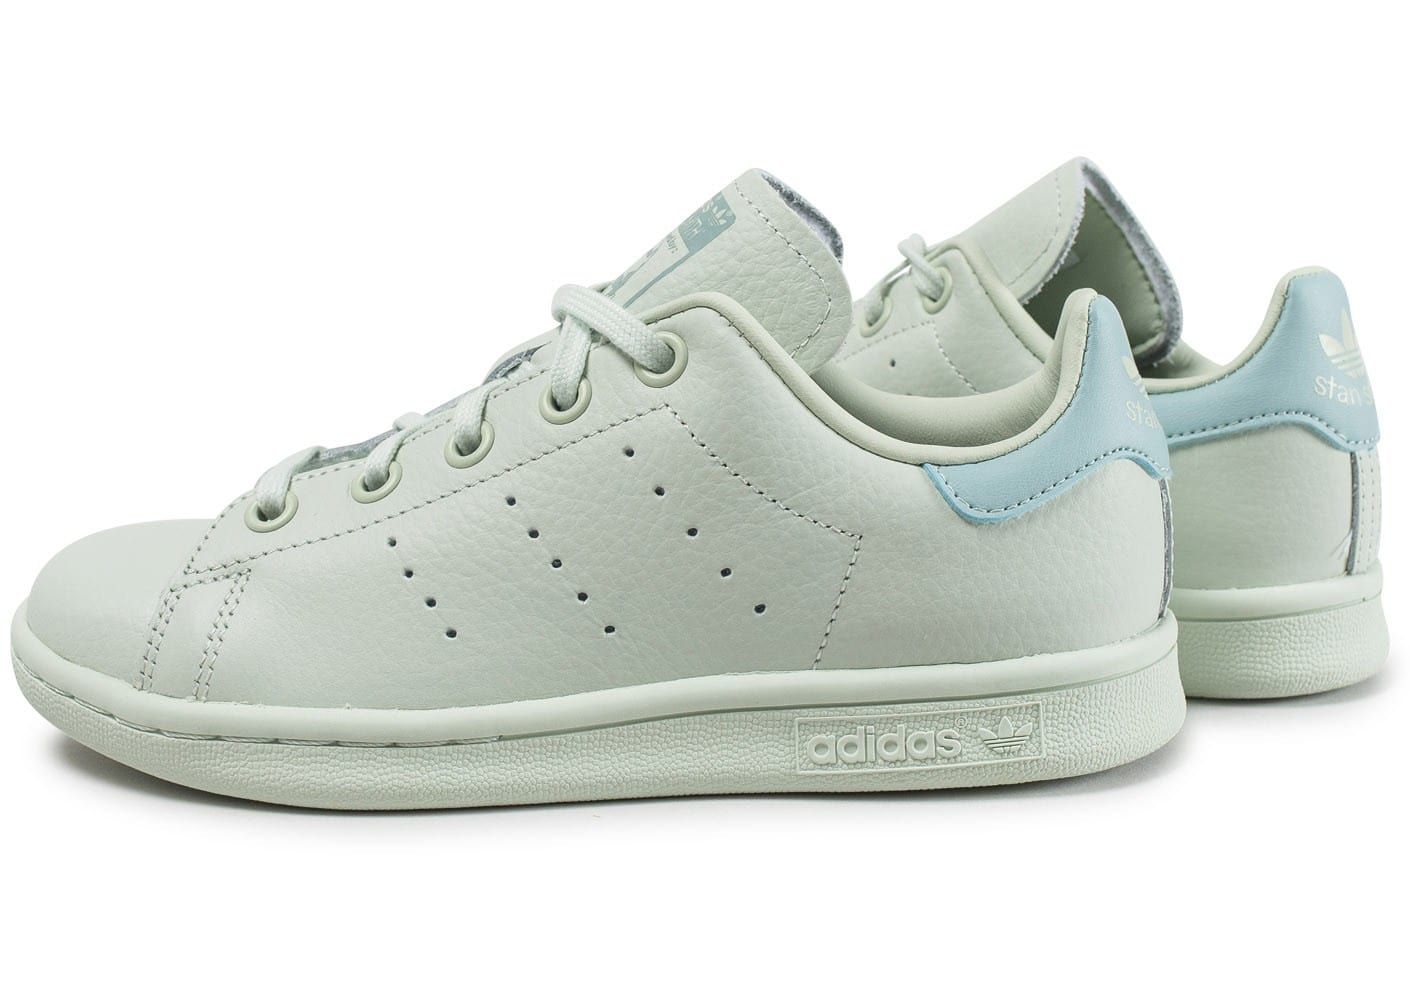 adidas stan smith enfant vert pastel chaussures adidas chausport. Black Bedroom Furniture Sets. Home Design Ideas